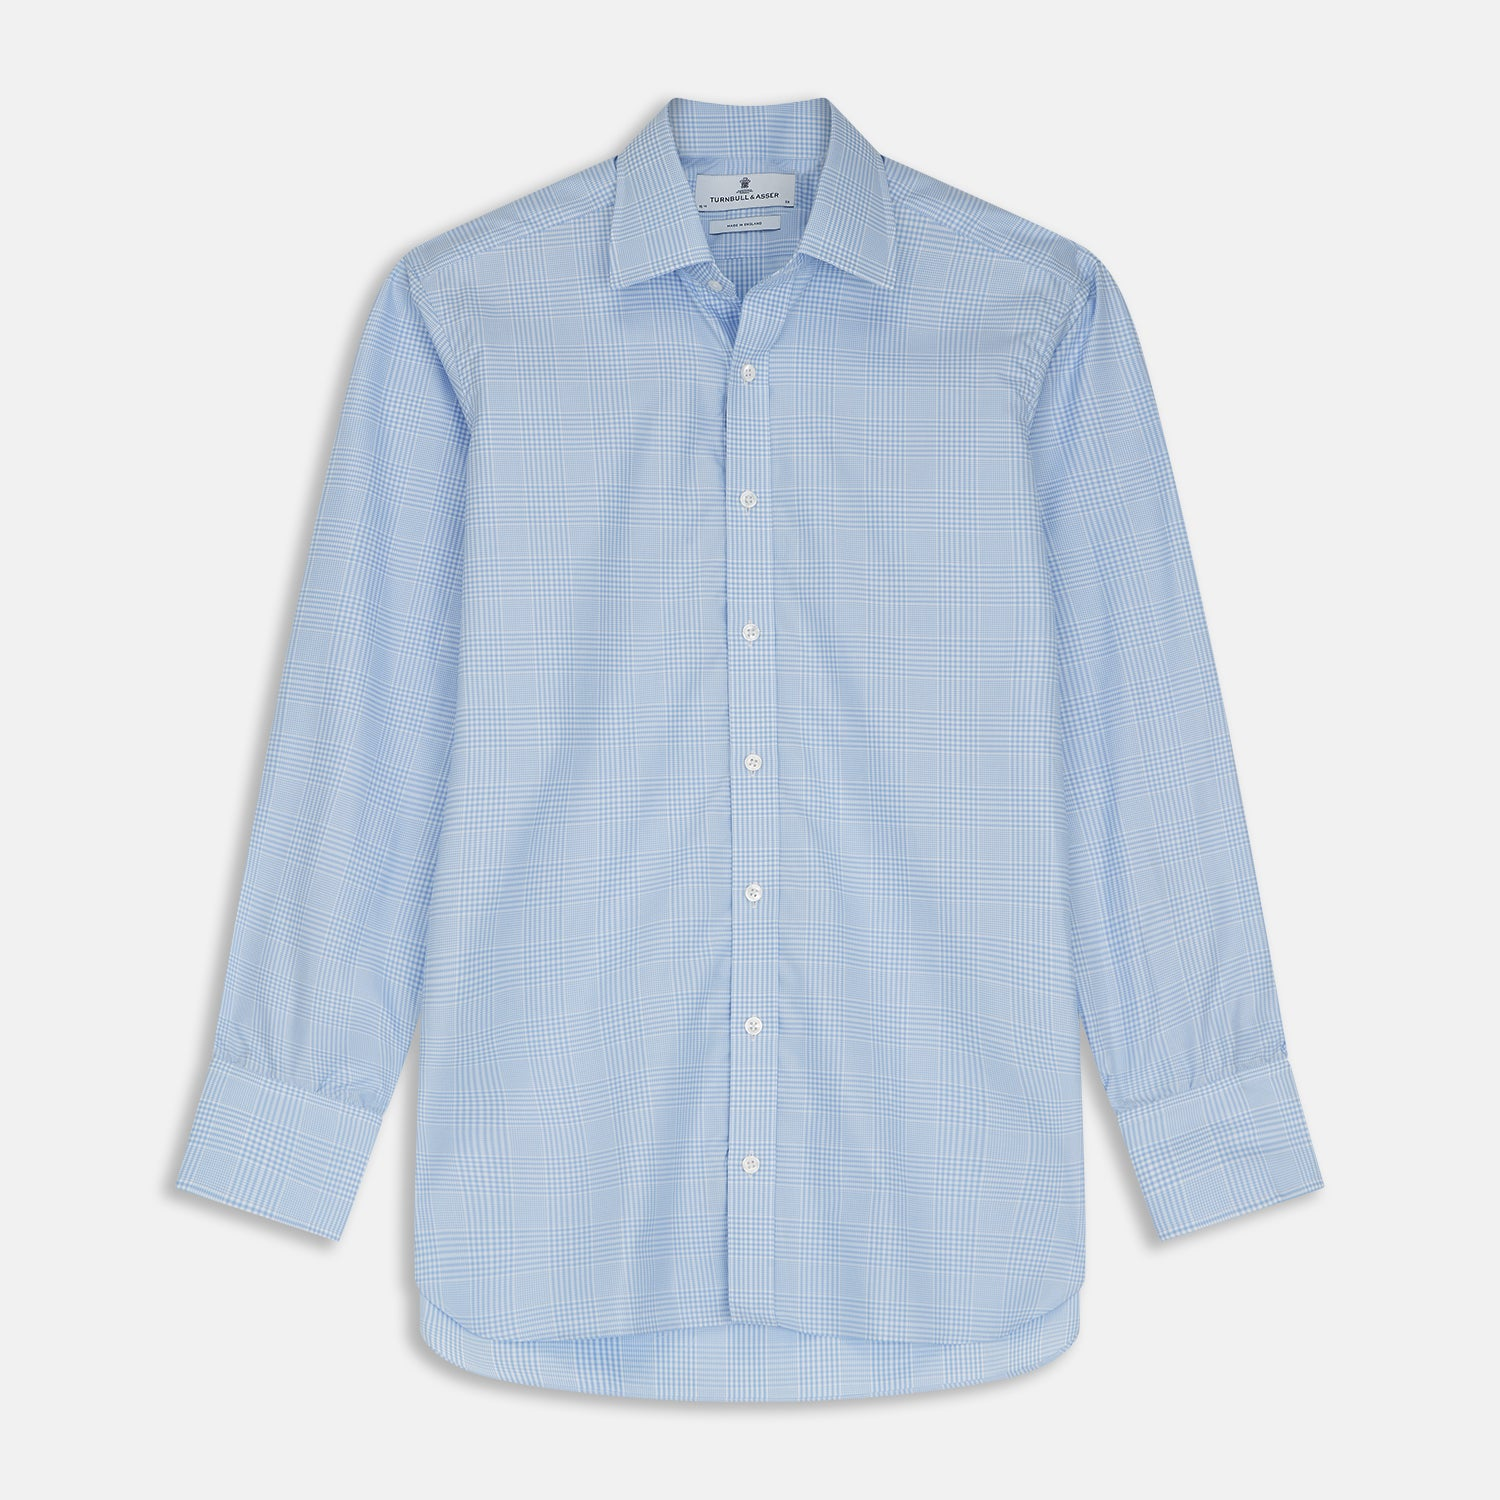 Pale Blue Check Shirt With T&A Collar And 3-Button Cuffs